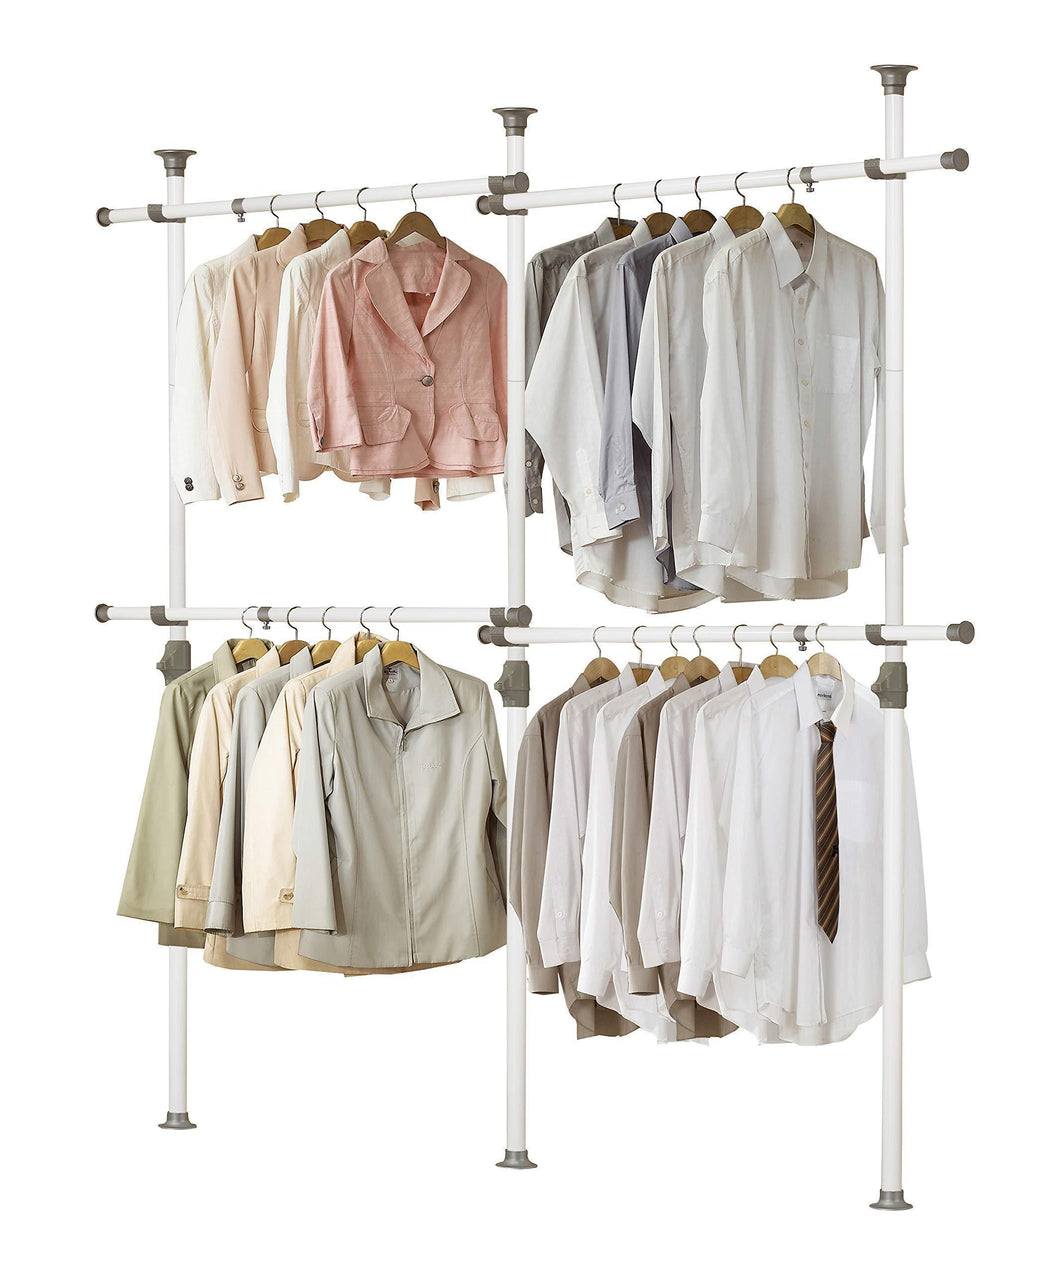 Shop for prince hanger one touch double 2 tier adjustable hanger holds 80kg176lb per horizontal bar clothing rack closet organizer 38mm vertical pole heavy duty garment rack phus 0033